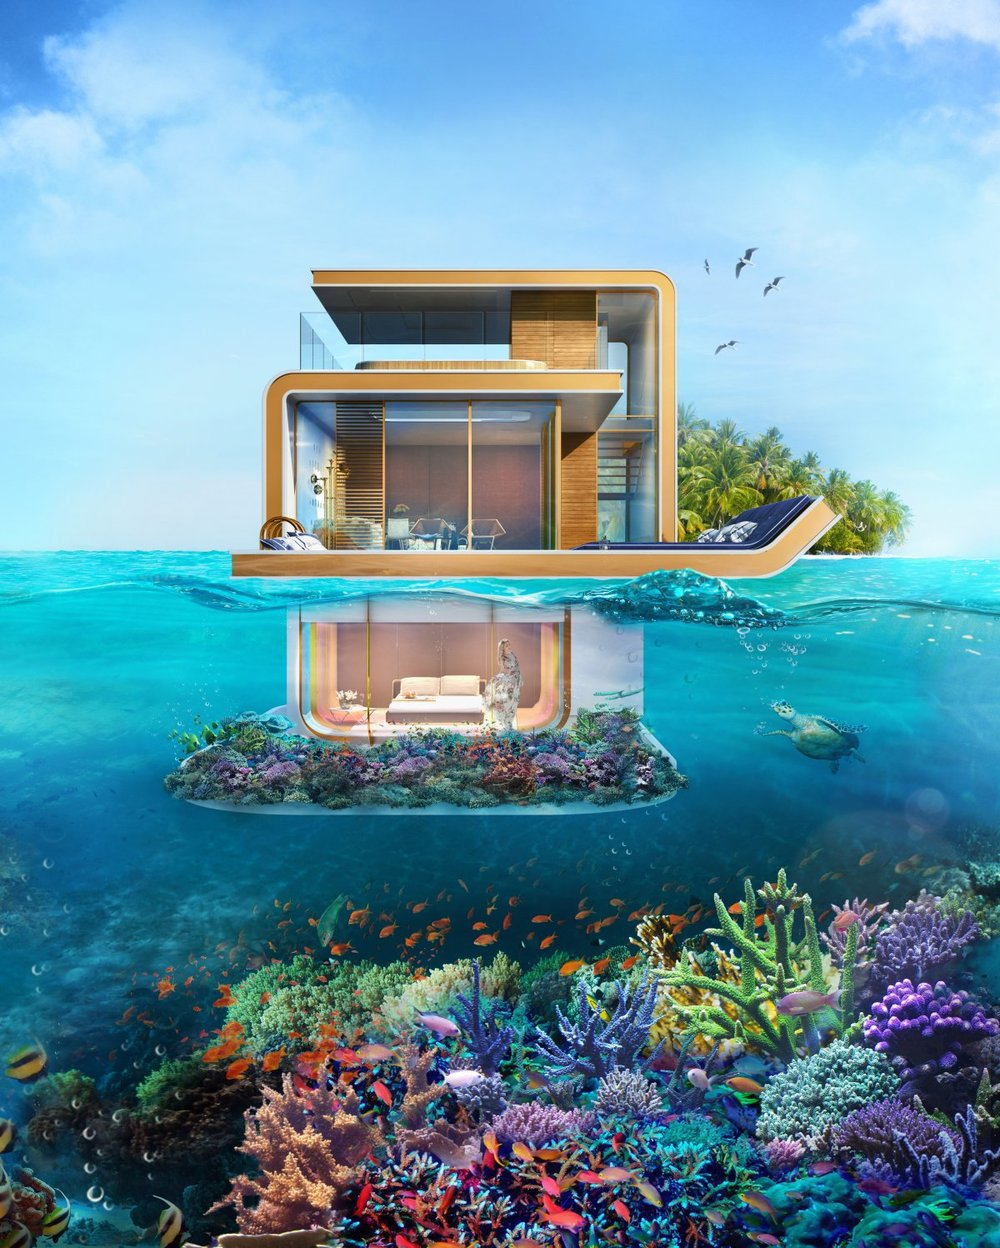 dubai's-ultra-luxurious-floating-homes-will-have-underwater-master-bedrooms-thatsitmag4.jpg